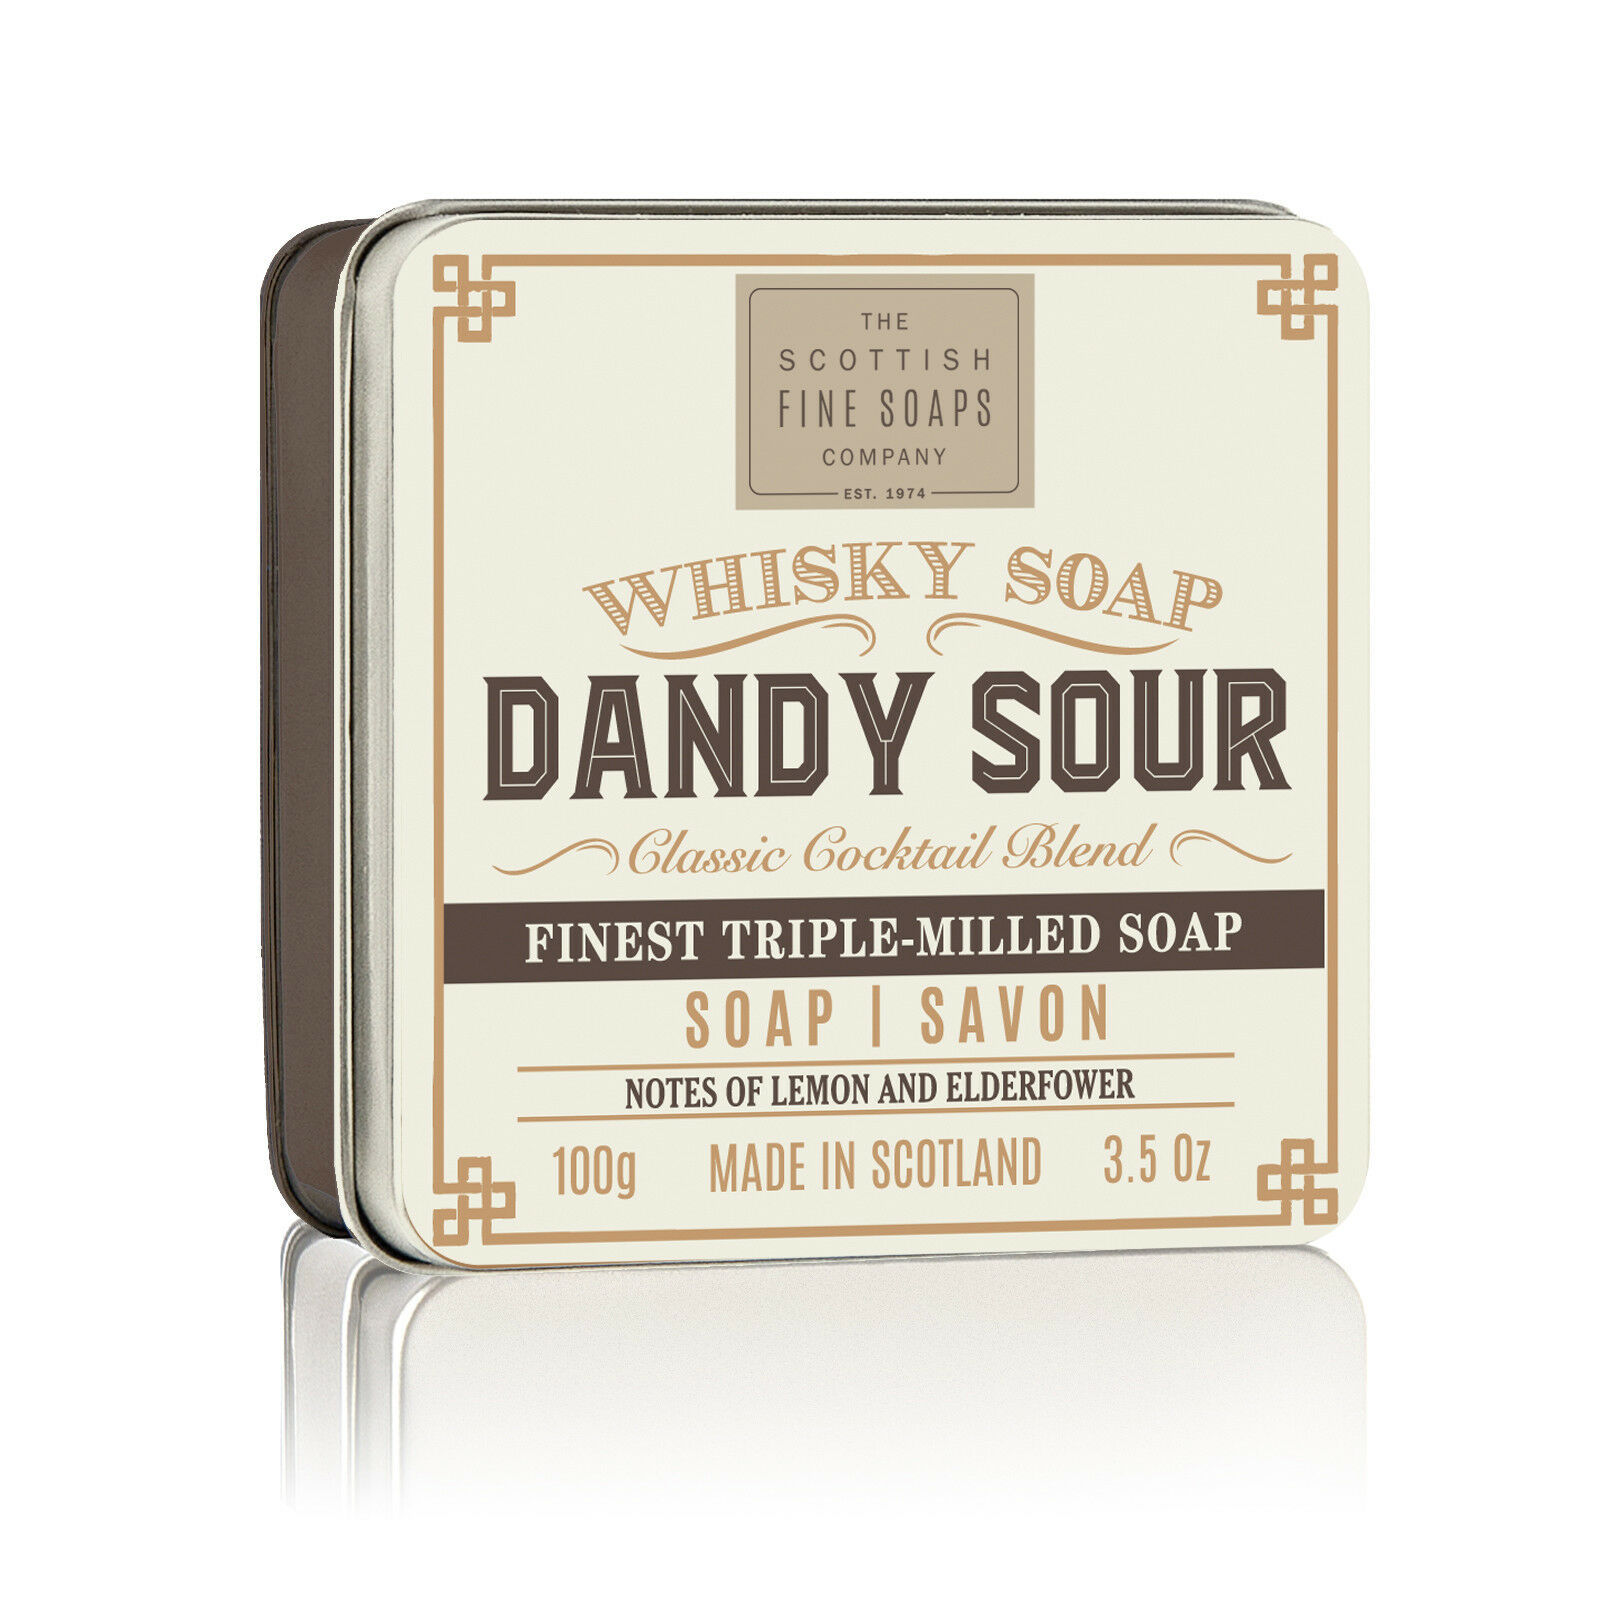 Scottish Fine Soaps Dandy Sour Soap in a Tin 100g 3.5oz, Imported From Scotland